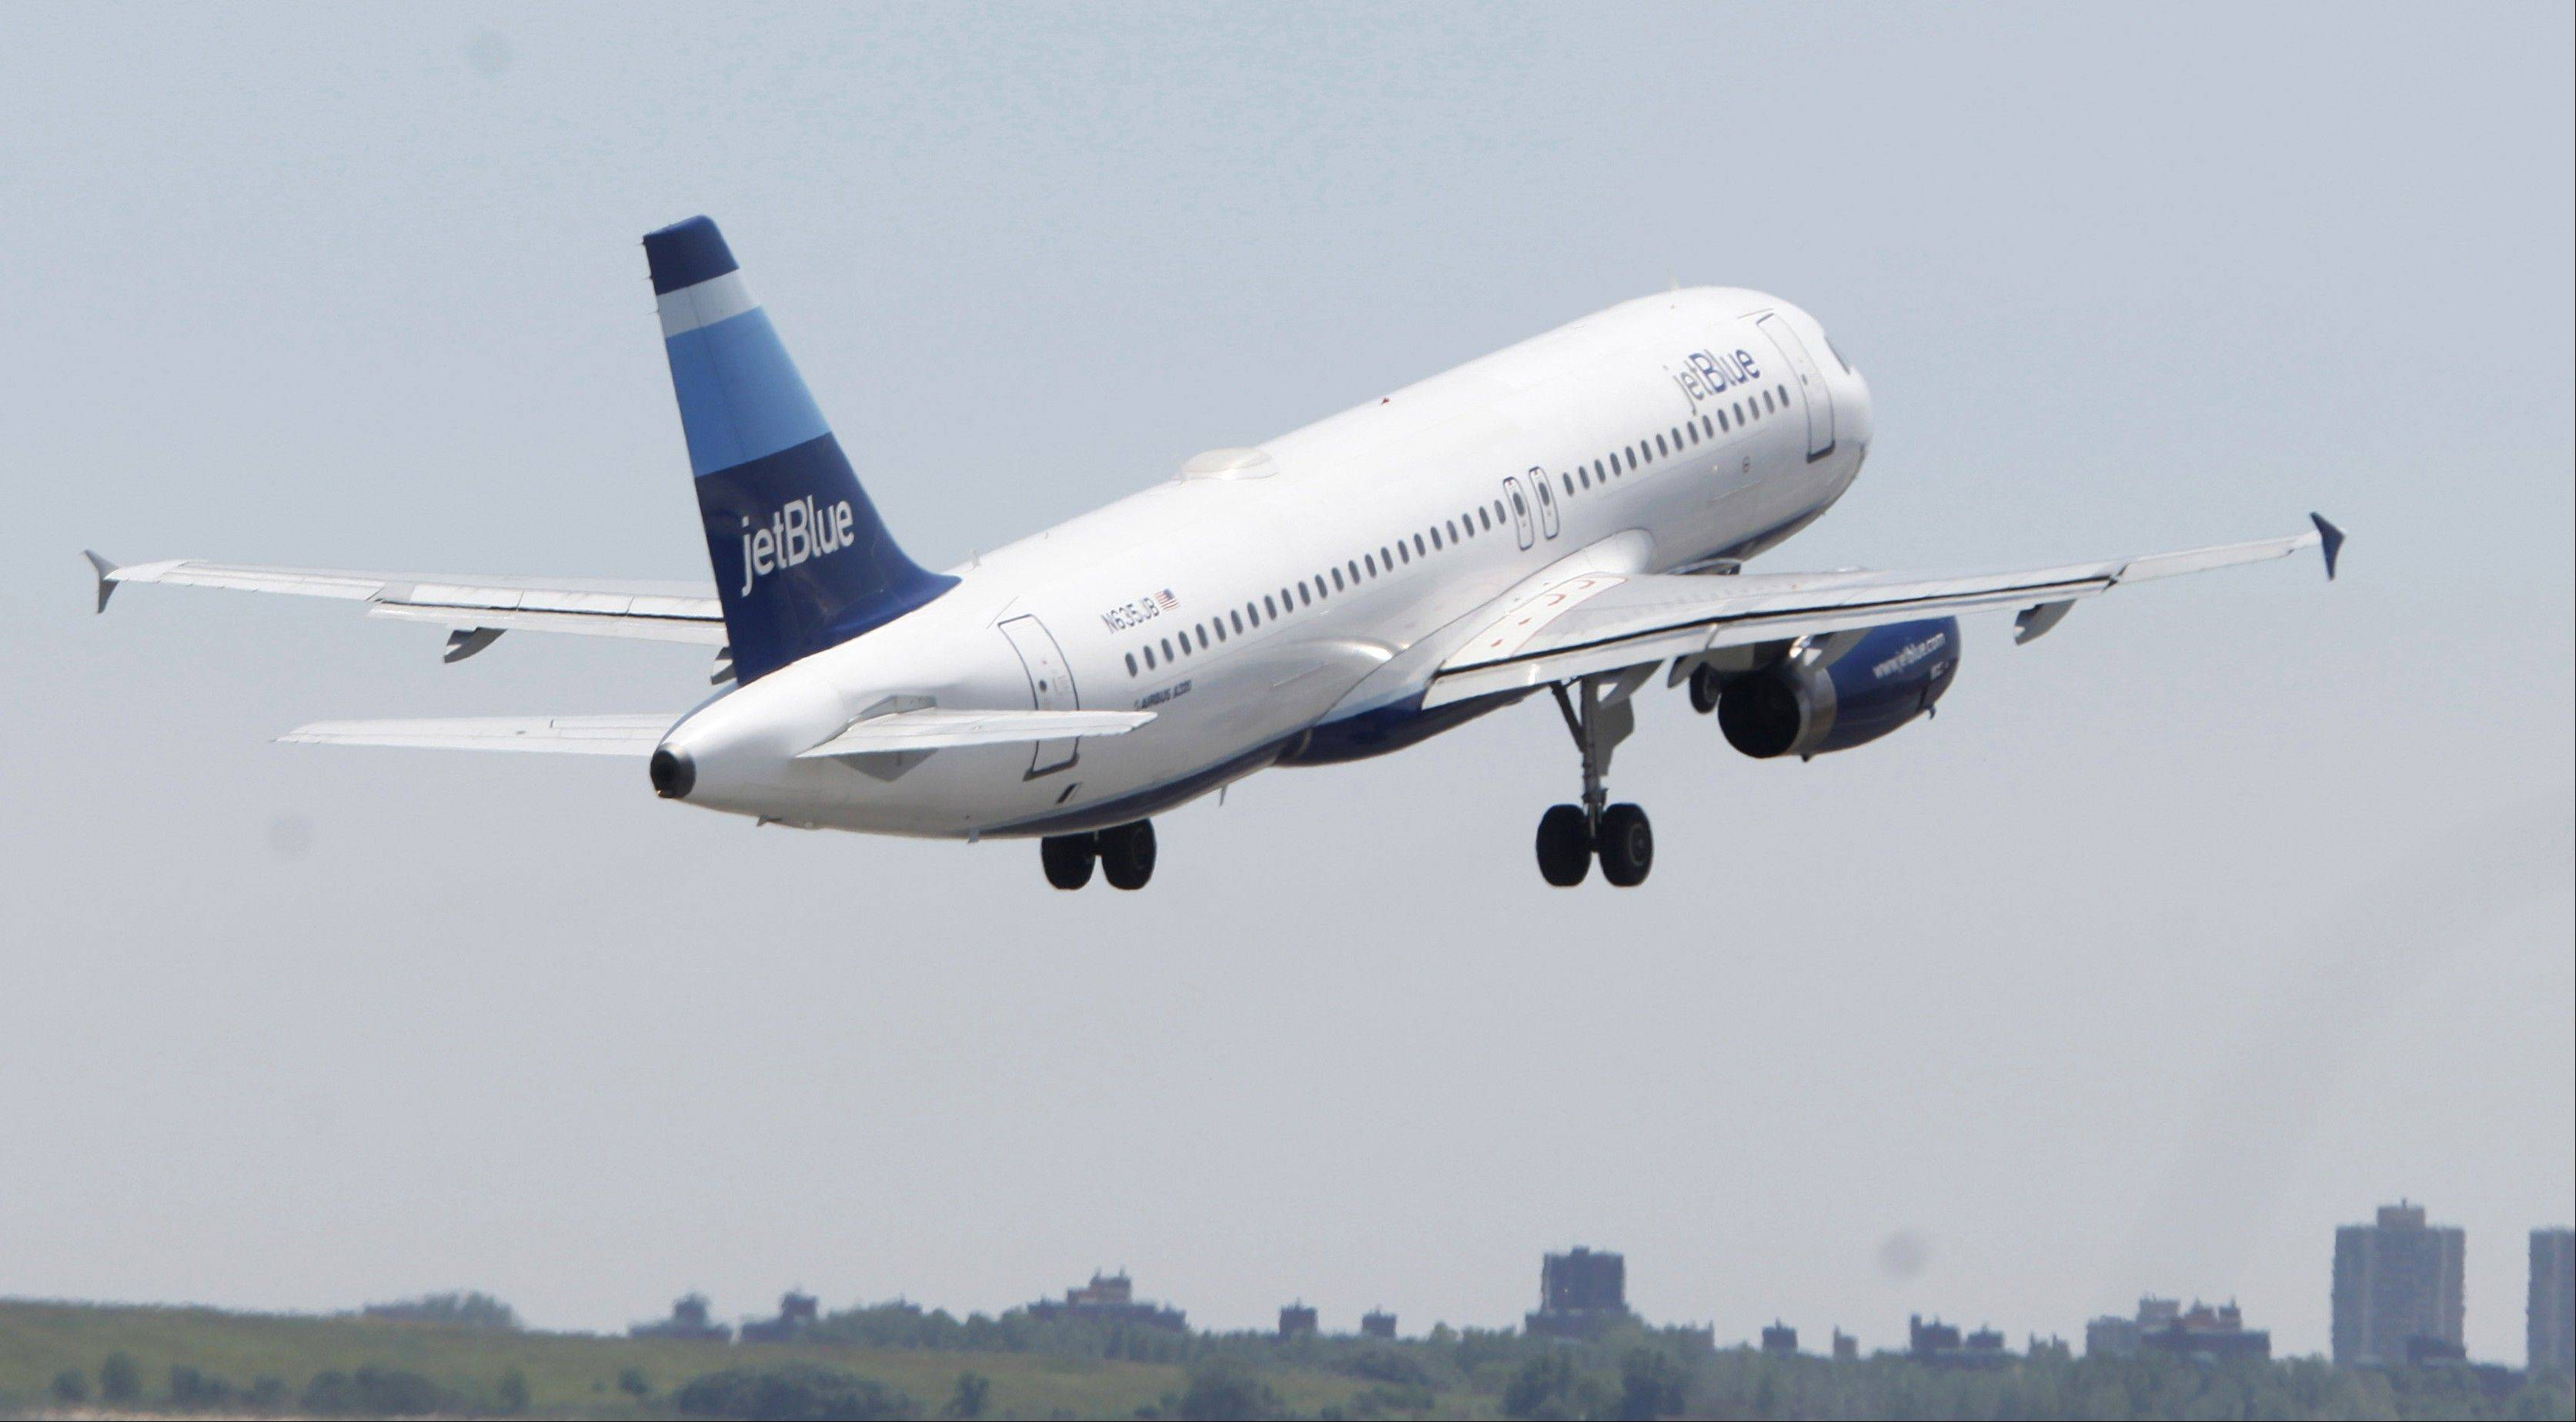 JetBlue is offering unlimited flight plans in an attempt to snare more higher-paying business travelers.